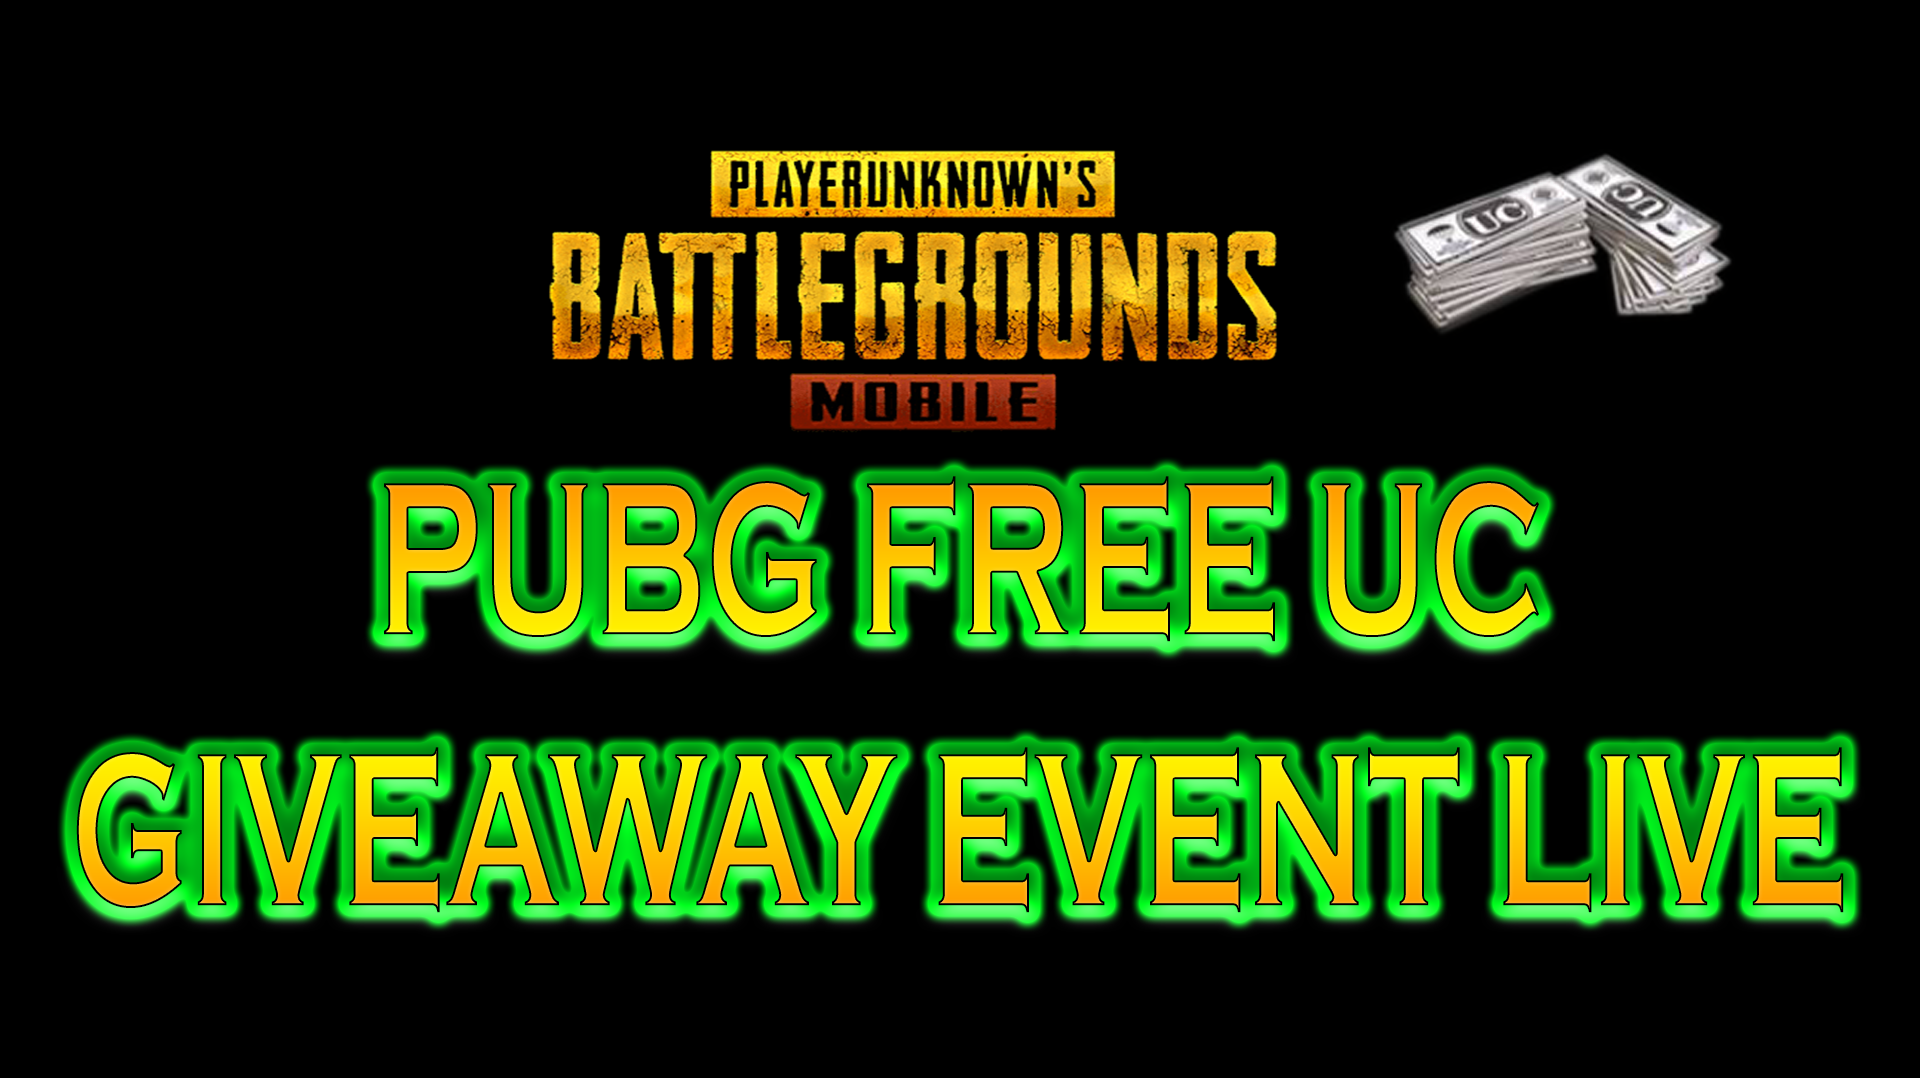 uc event.png.5dba6a19c6759f65afbf585170450ced - Free Game Hacks